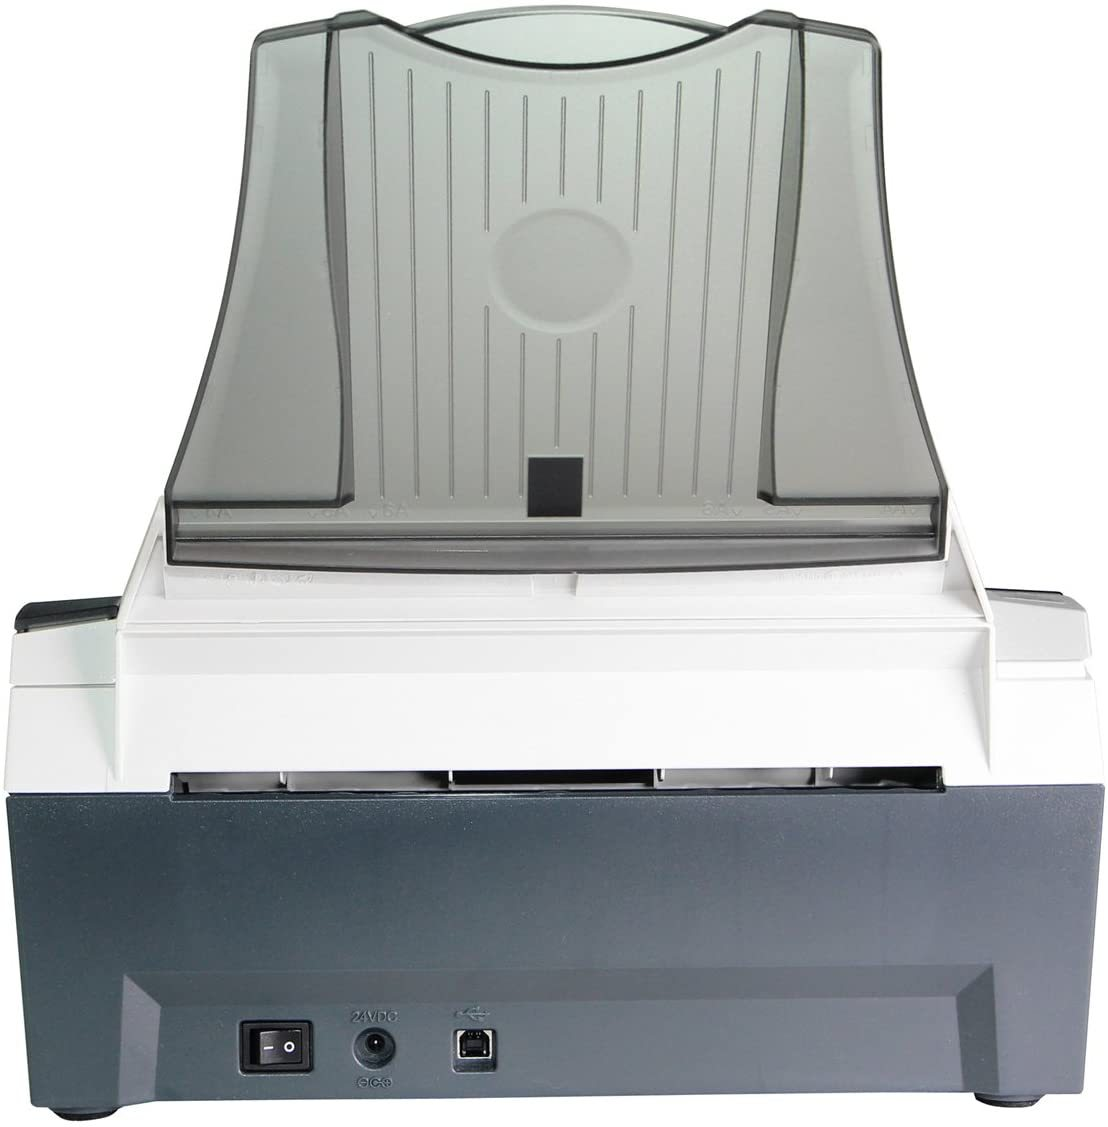 AW210 is a simplex sheetfed Color Scanner with The Best Document and Paper handling Functions.